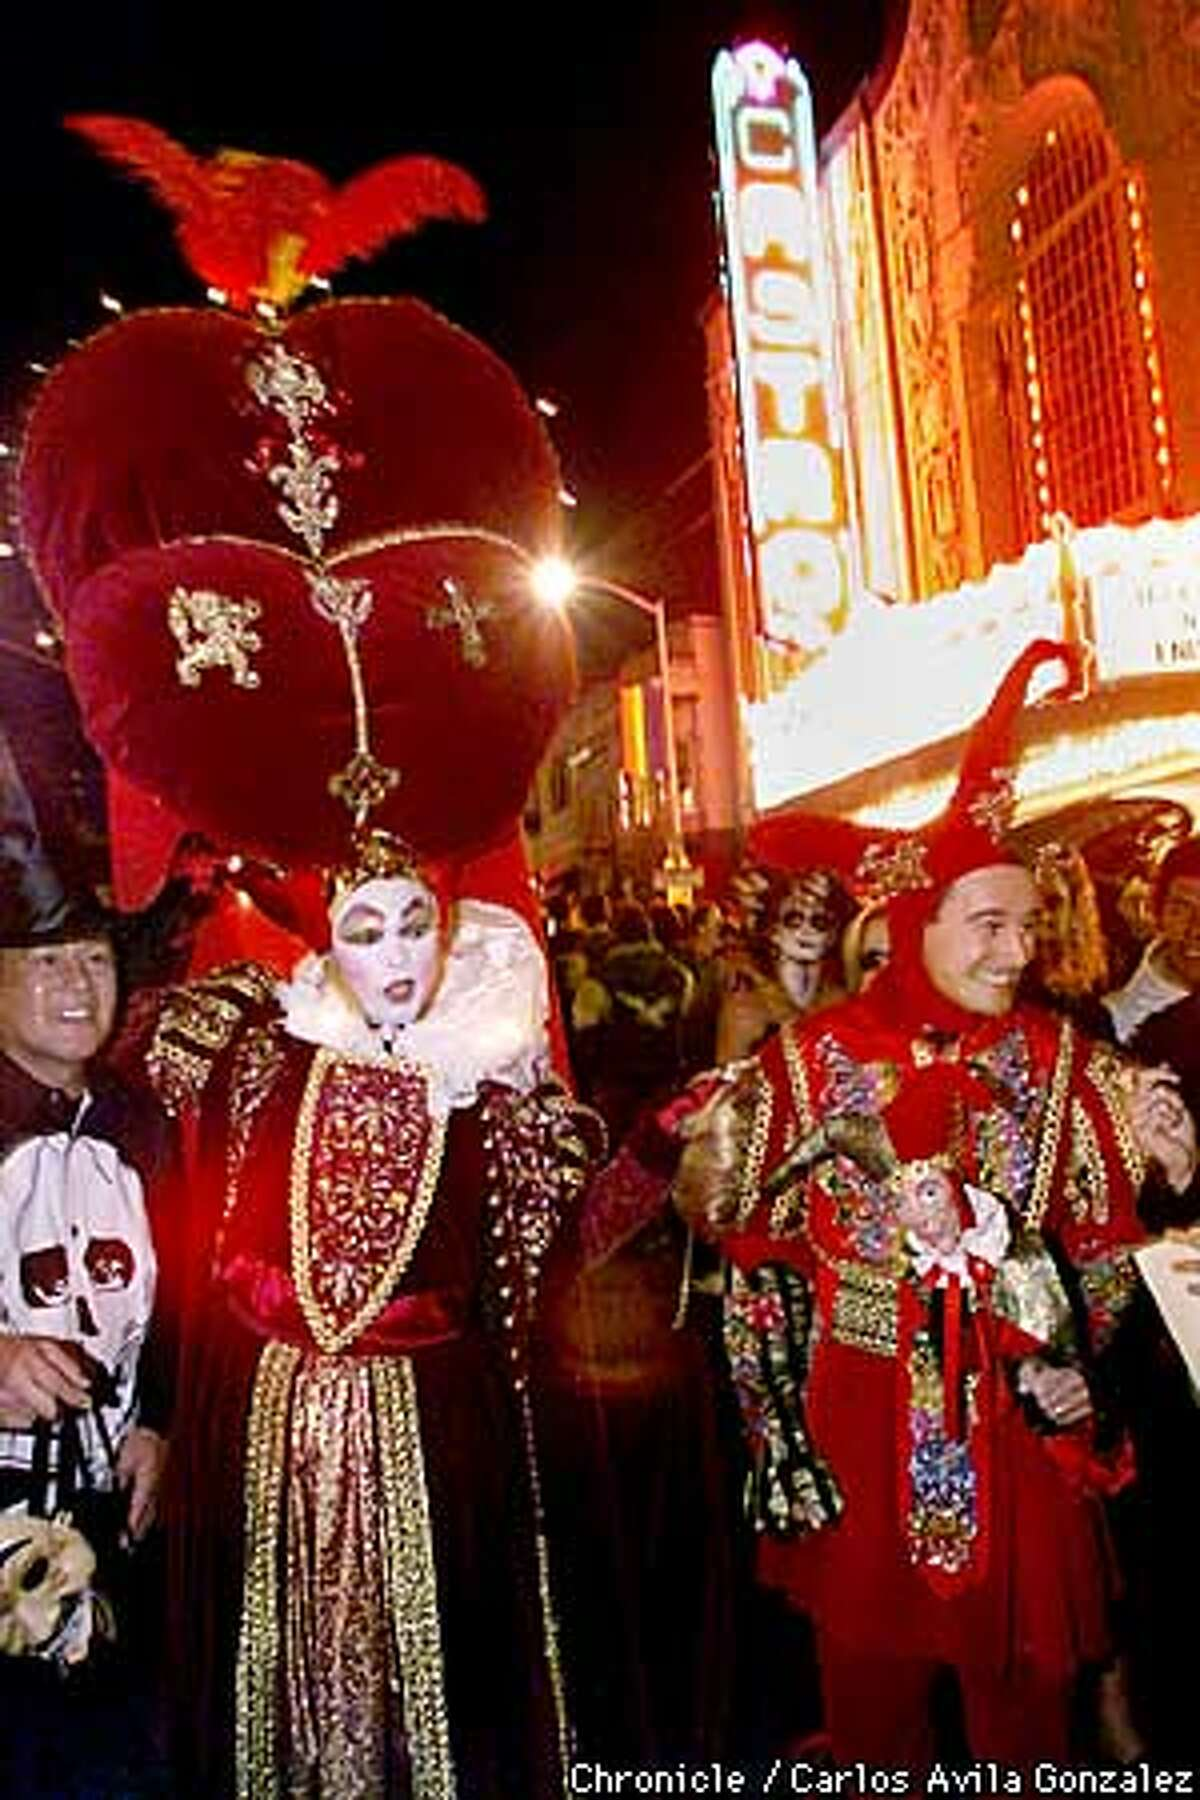 D/C/31OCT99/MN/CG --- Lawrence Ozoa, left, and Sean McCambridge as the queen and jester at San Francisco, Ca.'s, annual Castro Street celebration on Sunday, October 31, 1999. (CARLOS AVILA GONZALEZ/SAN FRANCISCO CHRONICLE)